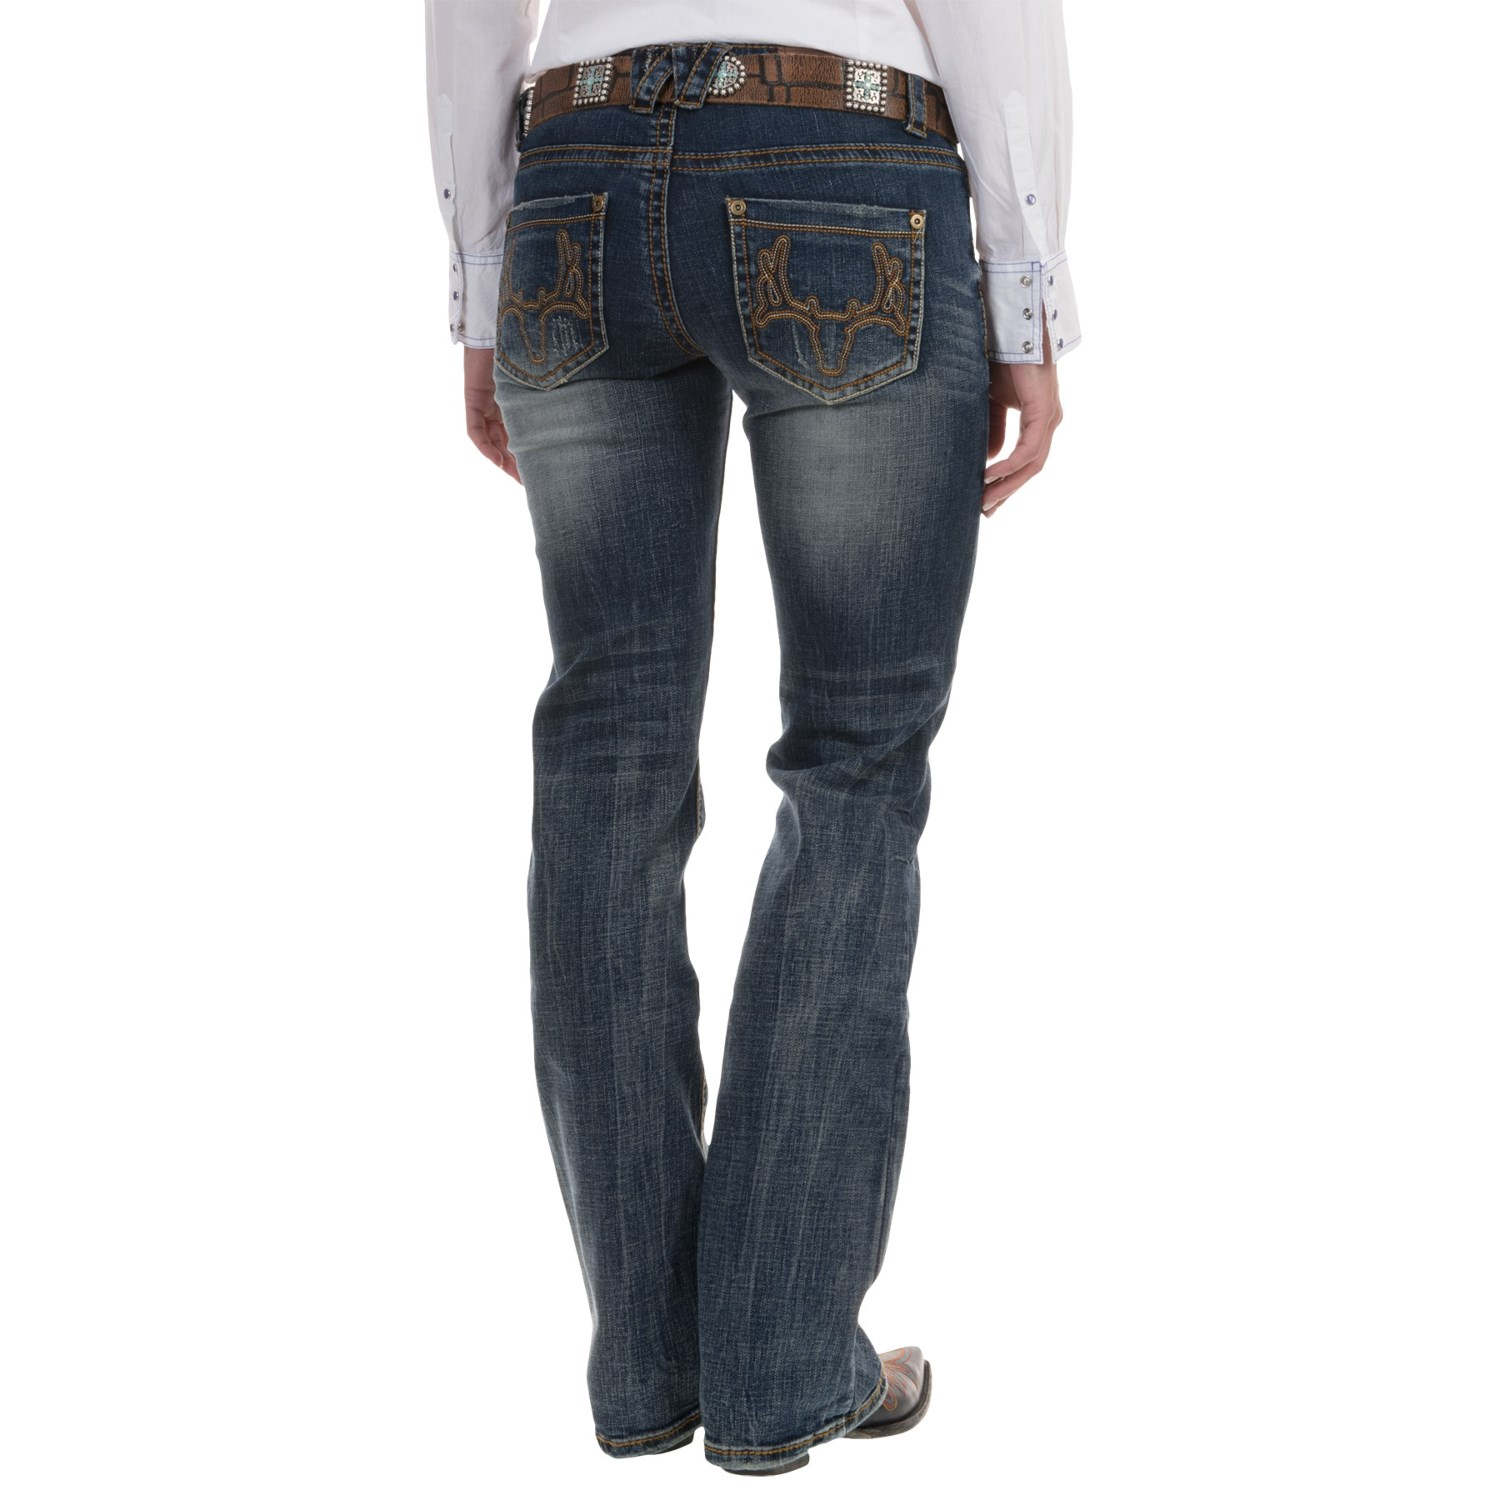 Best Jeans: 7 For All Mankind The Skinny Jeans These body-hugging skinny jeans add femininity and definition to Tracy's narrow hips and calves. The dark wash has an elongating effect on her body, as does the inch inseam that hits just below the ankle.